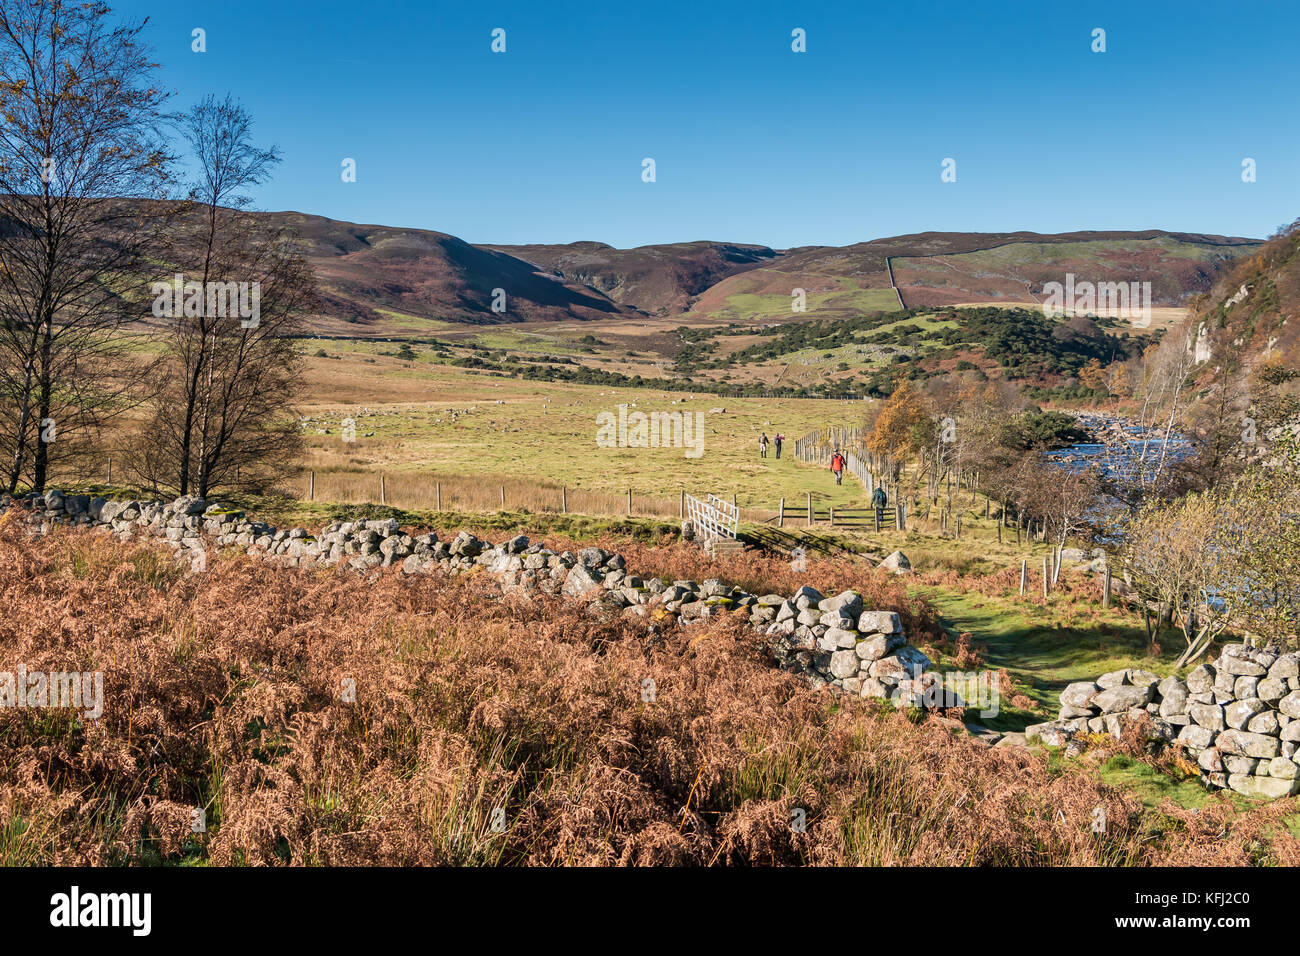 Teesdale landscape, the Pennine Way long distance footpath from Blea Beck to Cronkley Fell with a group of walkers - Stock Image